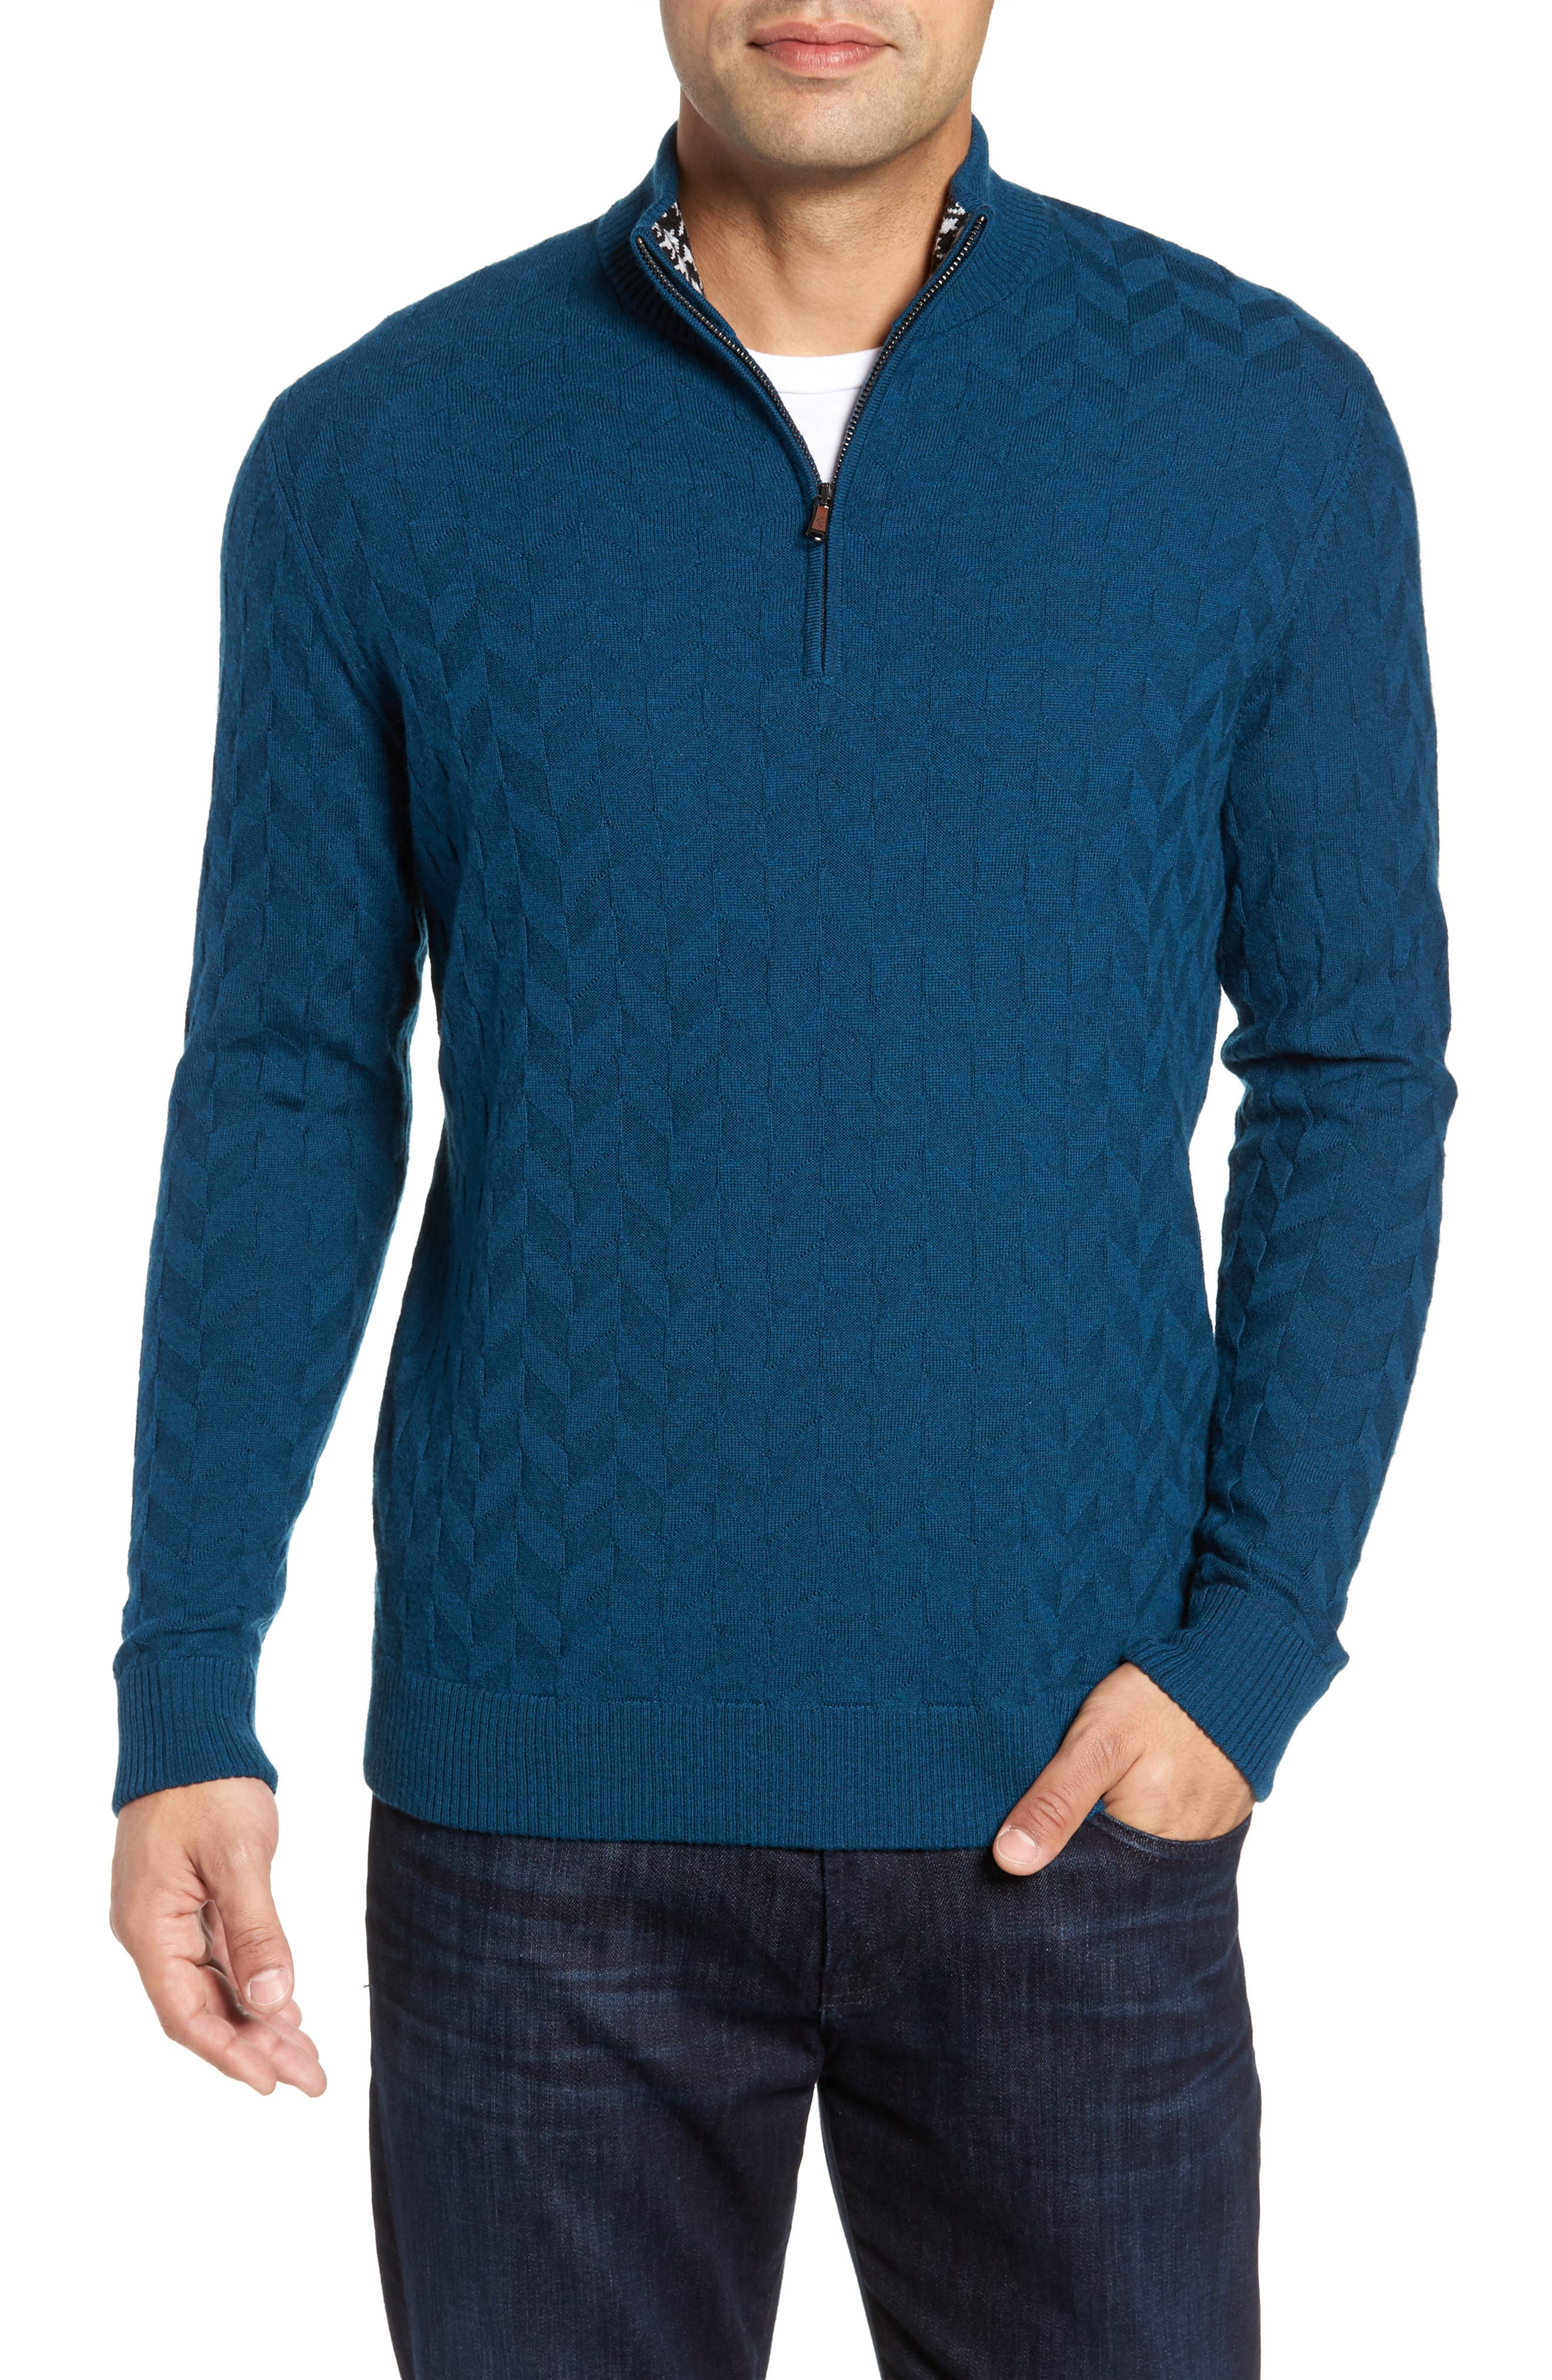 Rowley Classic Fit Quarter Zip Sweater,                         Main,                         color, TEAL